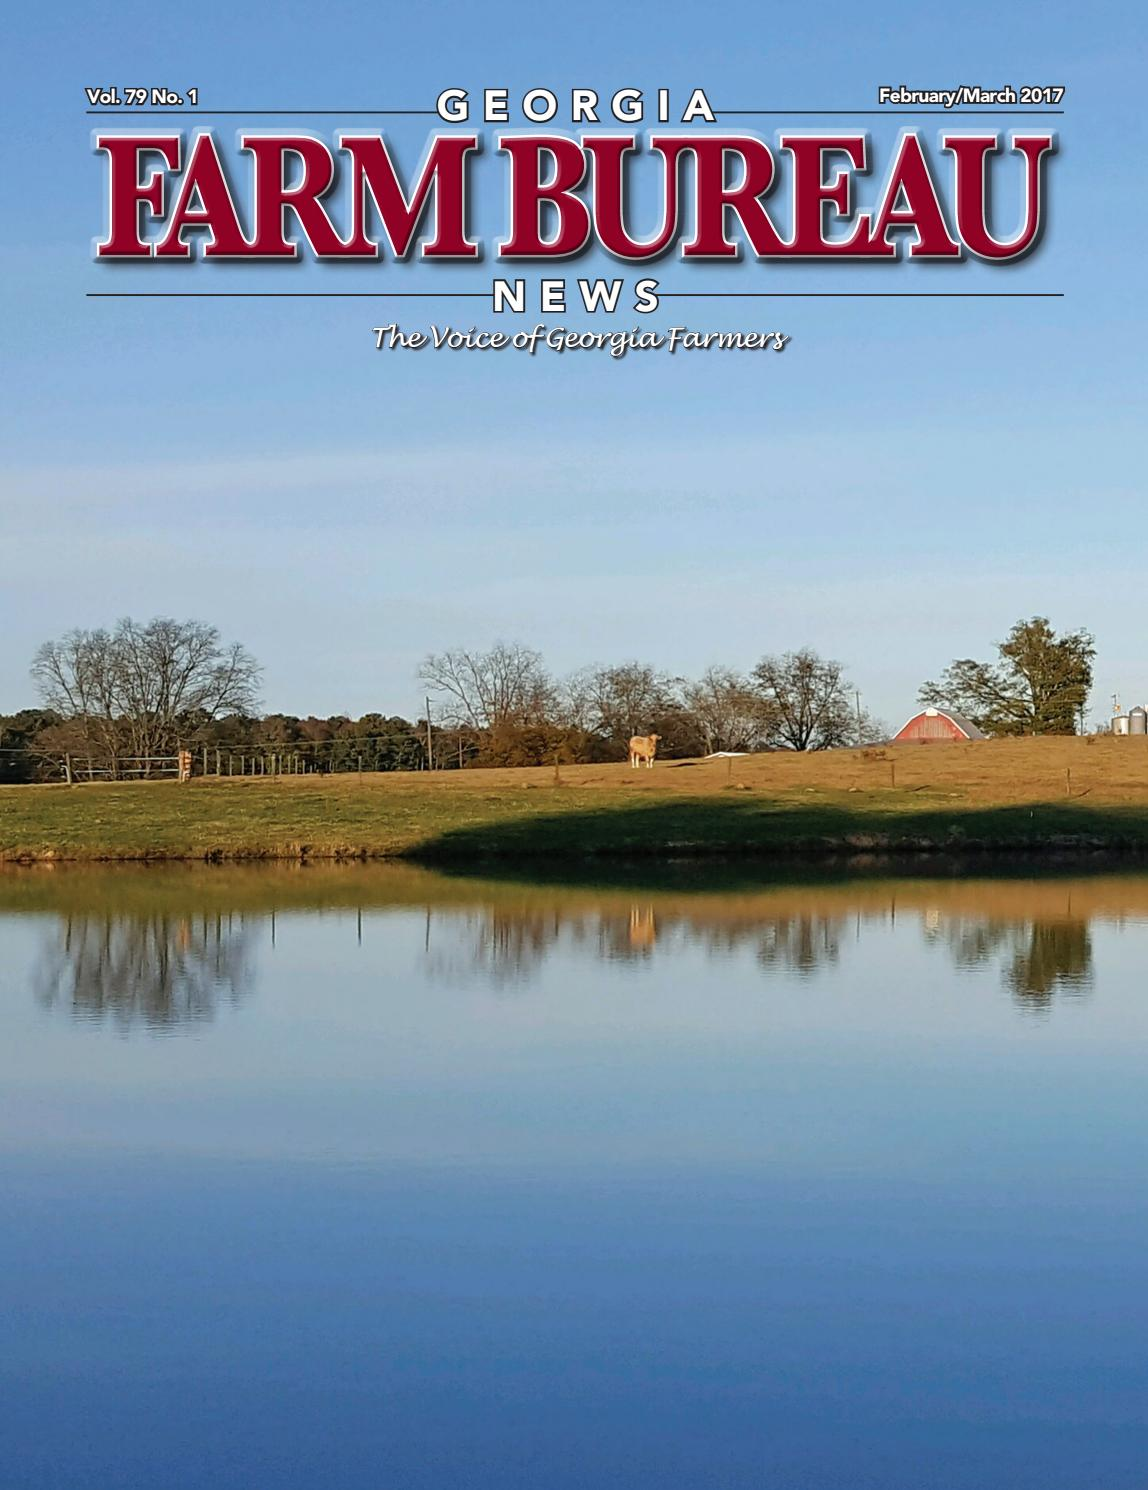 georgia farm bureau news february march 2017 by georgia farm bureau issuu. Black Bedroom Furniture Sets. Home Design Ideas